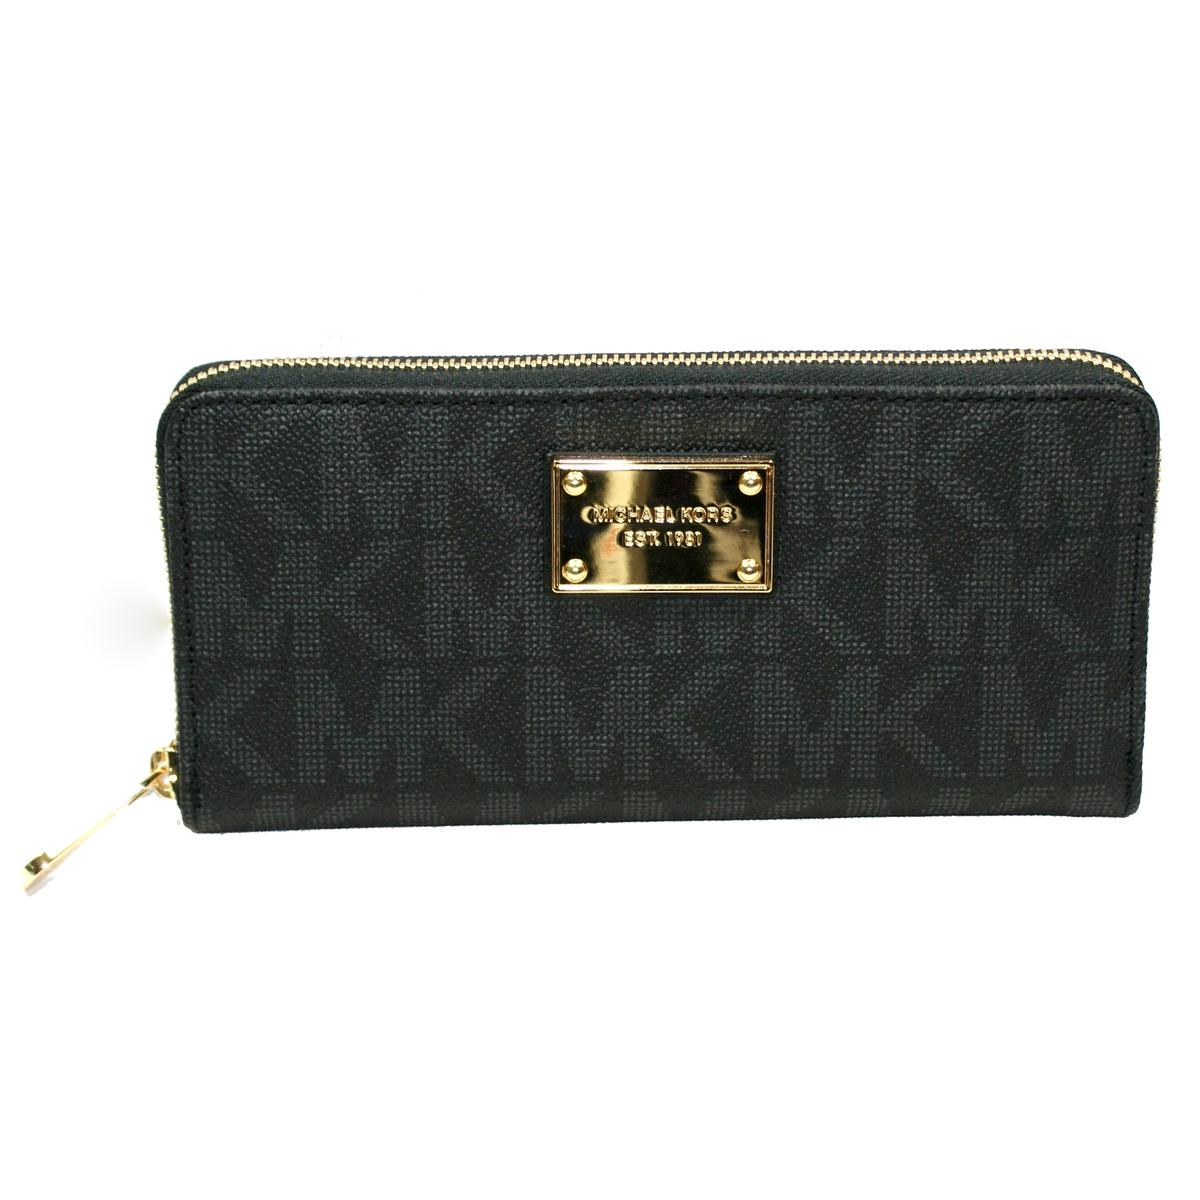 Michael Kors Jet Set Mk Signature Pvc Continental Wallet